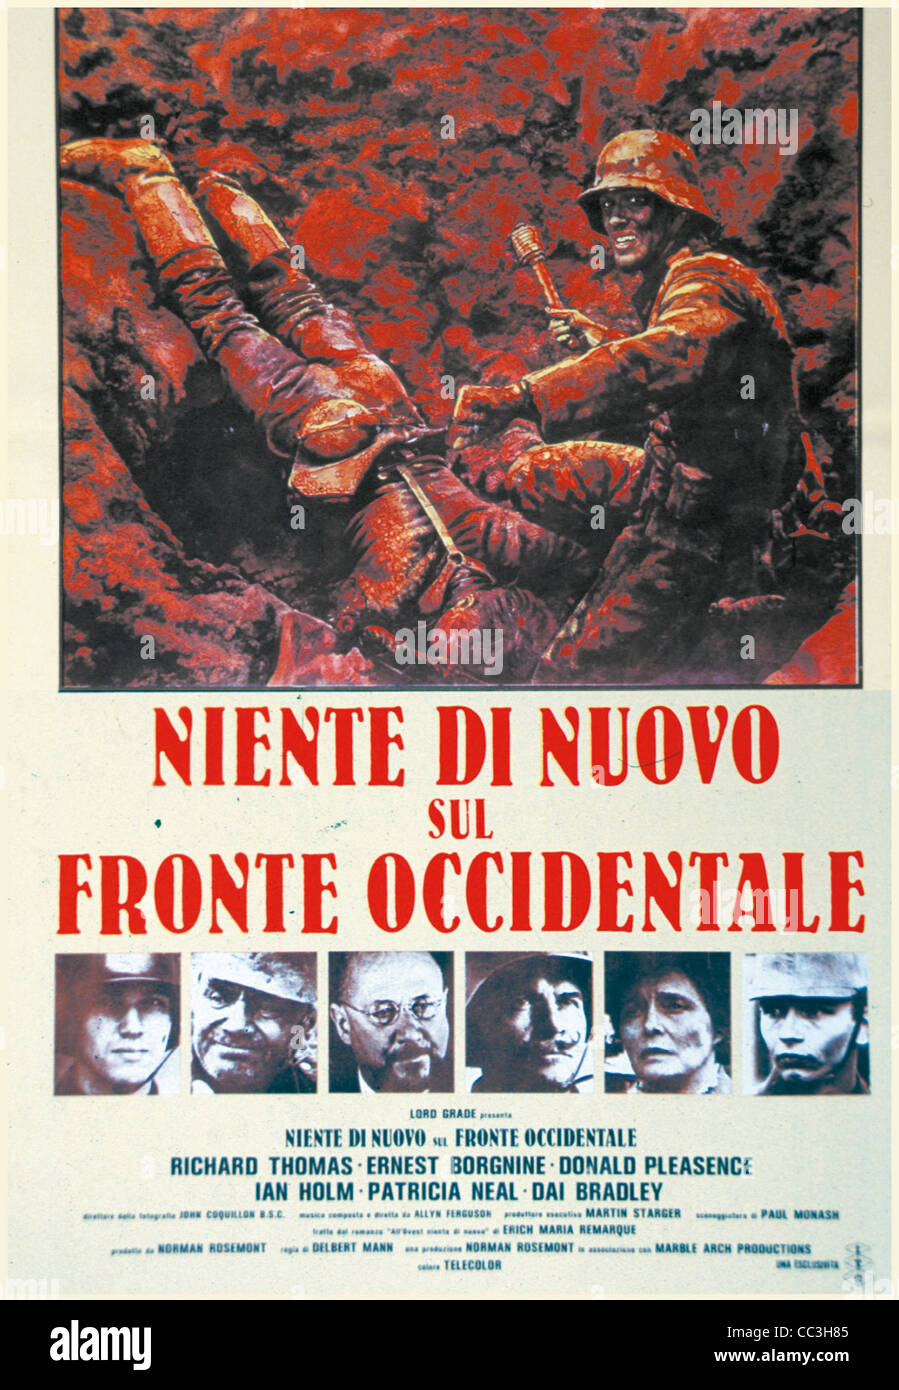 Cinema: All Quiet On The Western Front 1979 Director Delbert Mann Poster - Stock Image